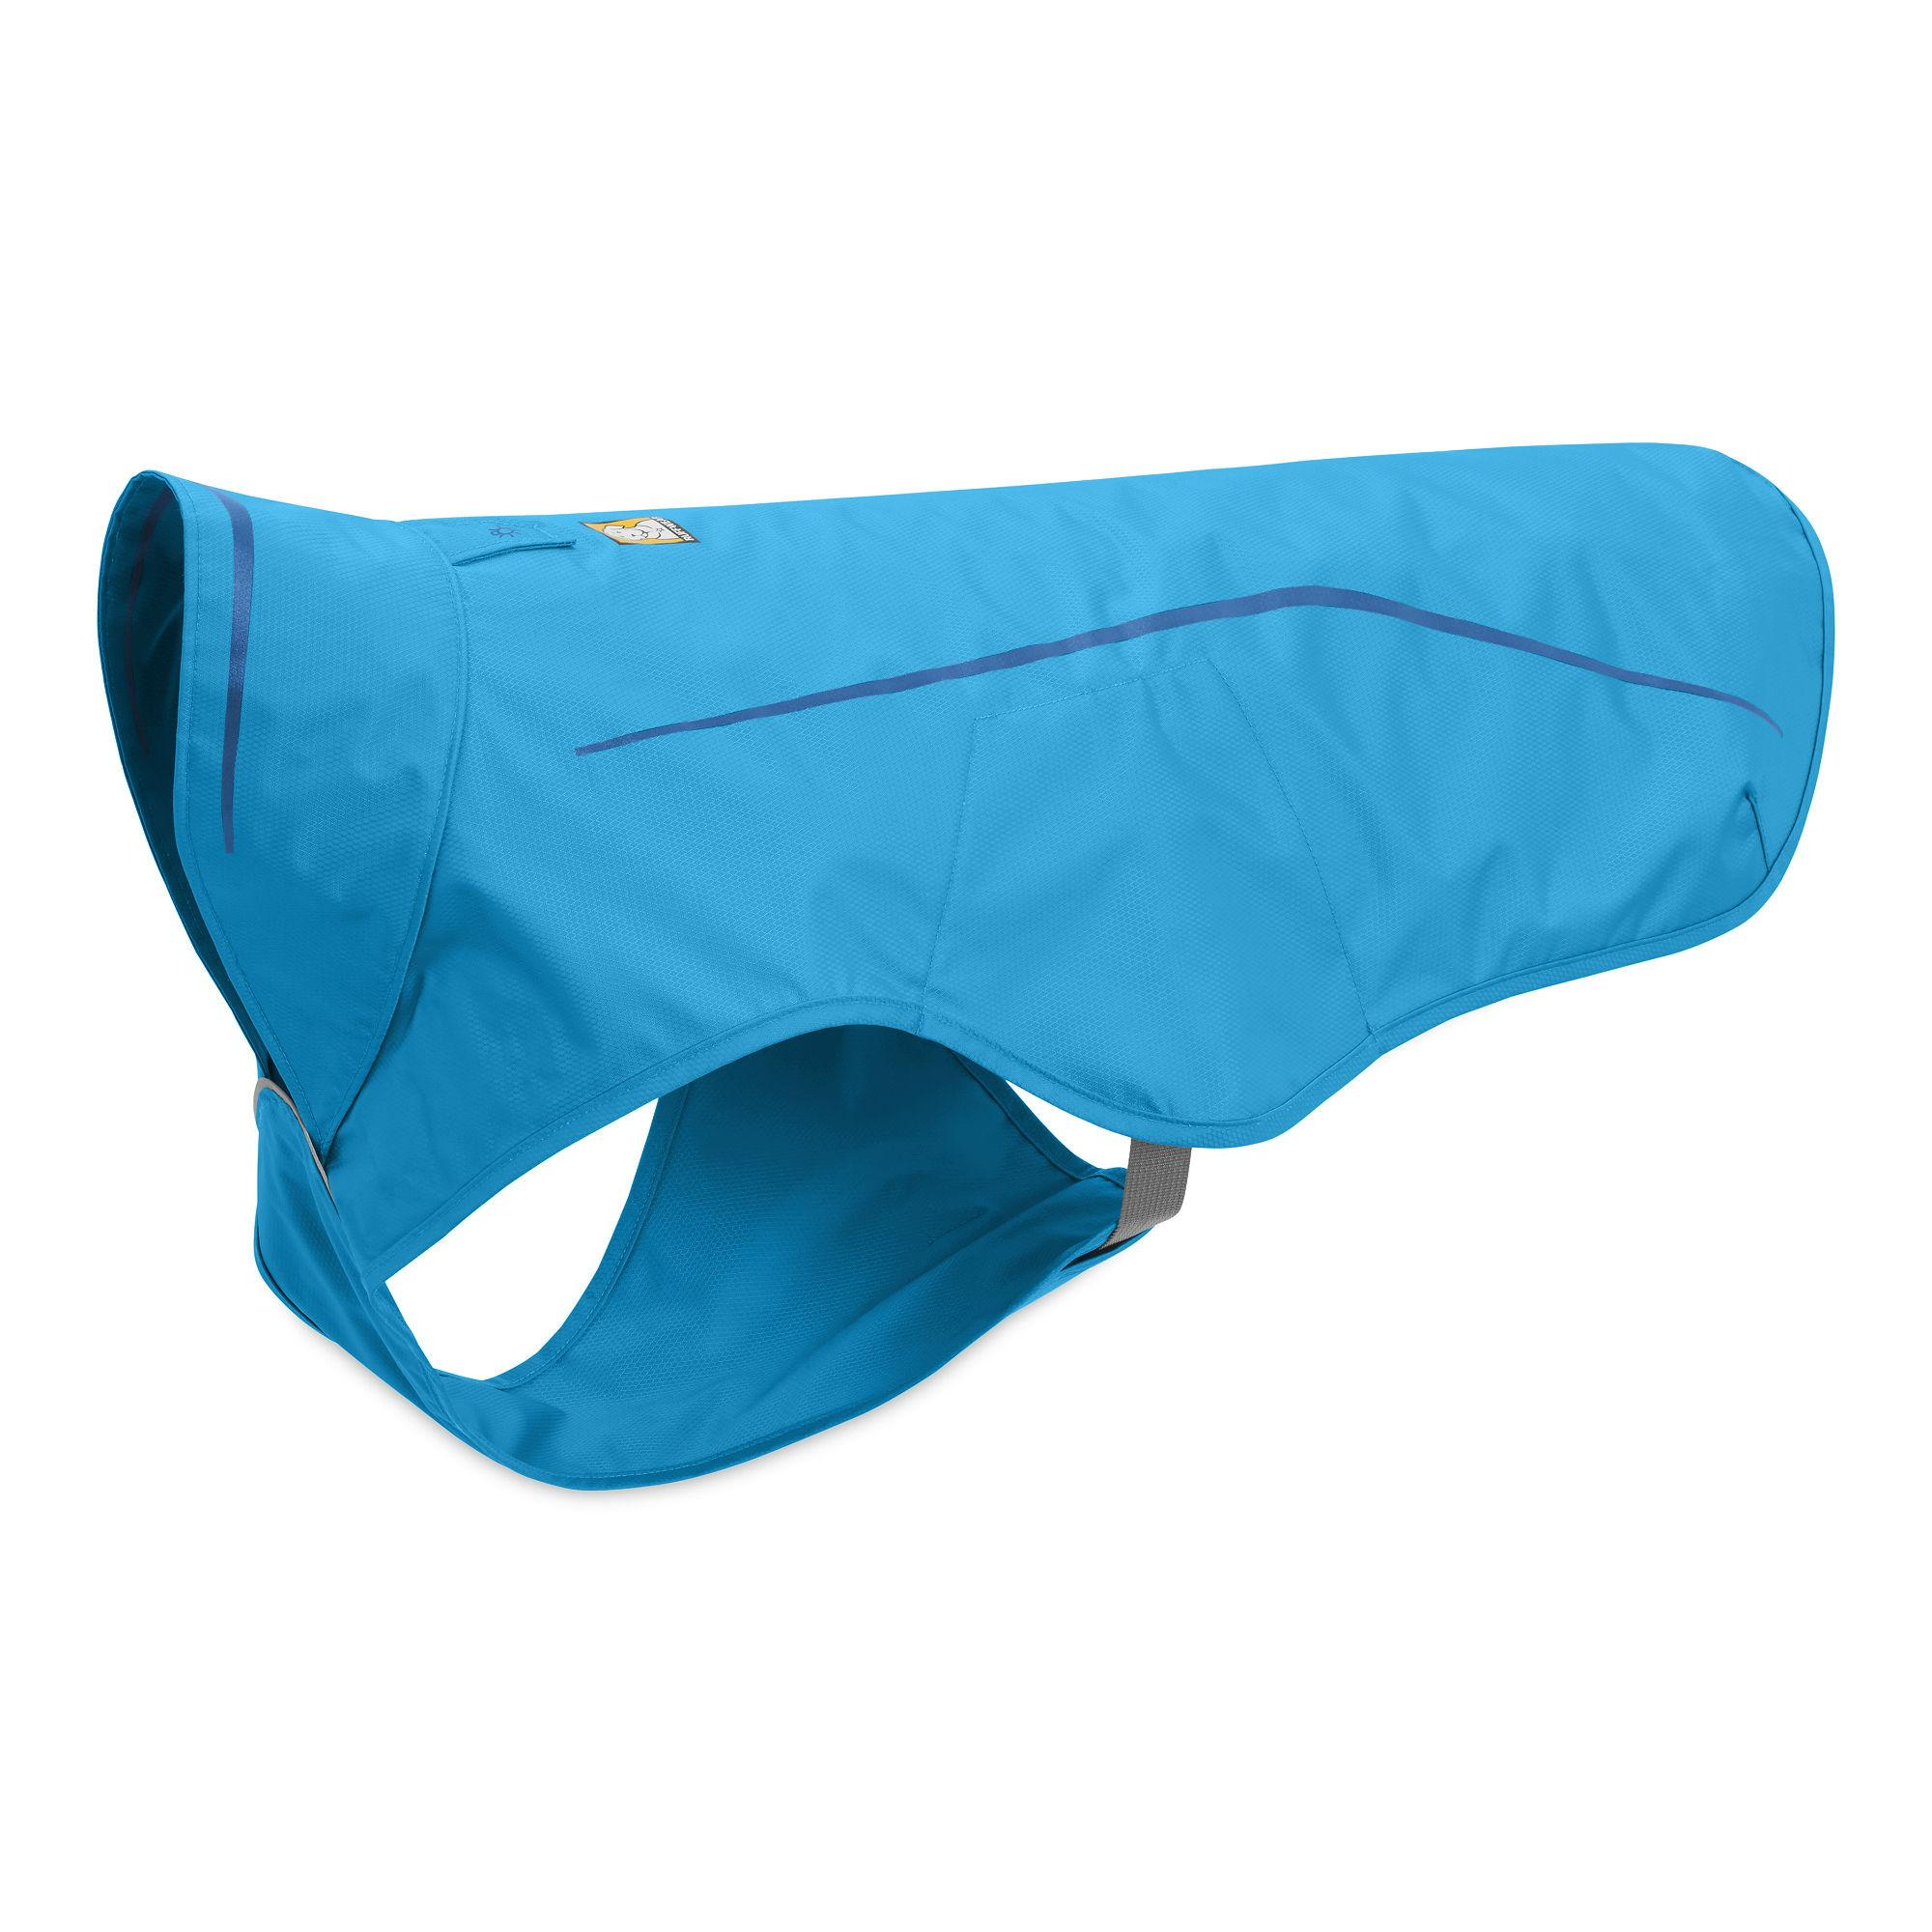 Sun Shower Dog Rain Jacket by RuffWear - Blue Dusk